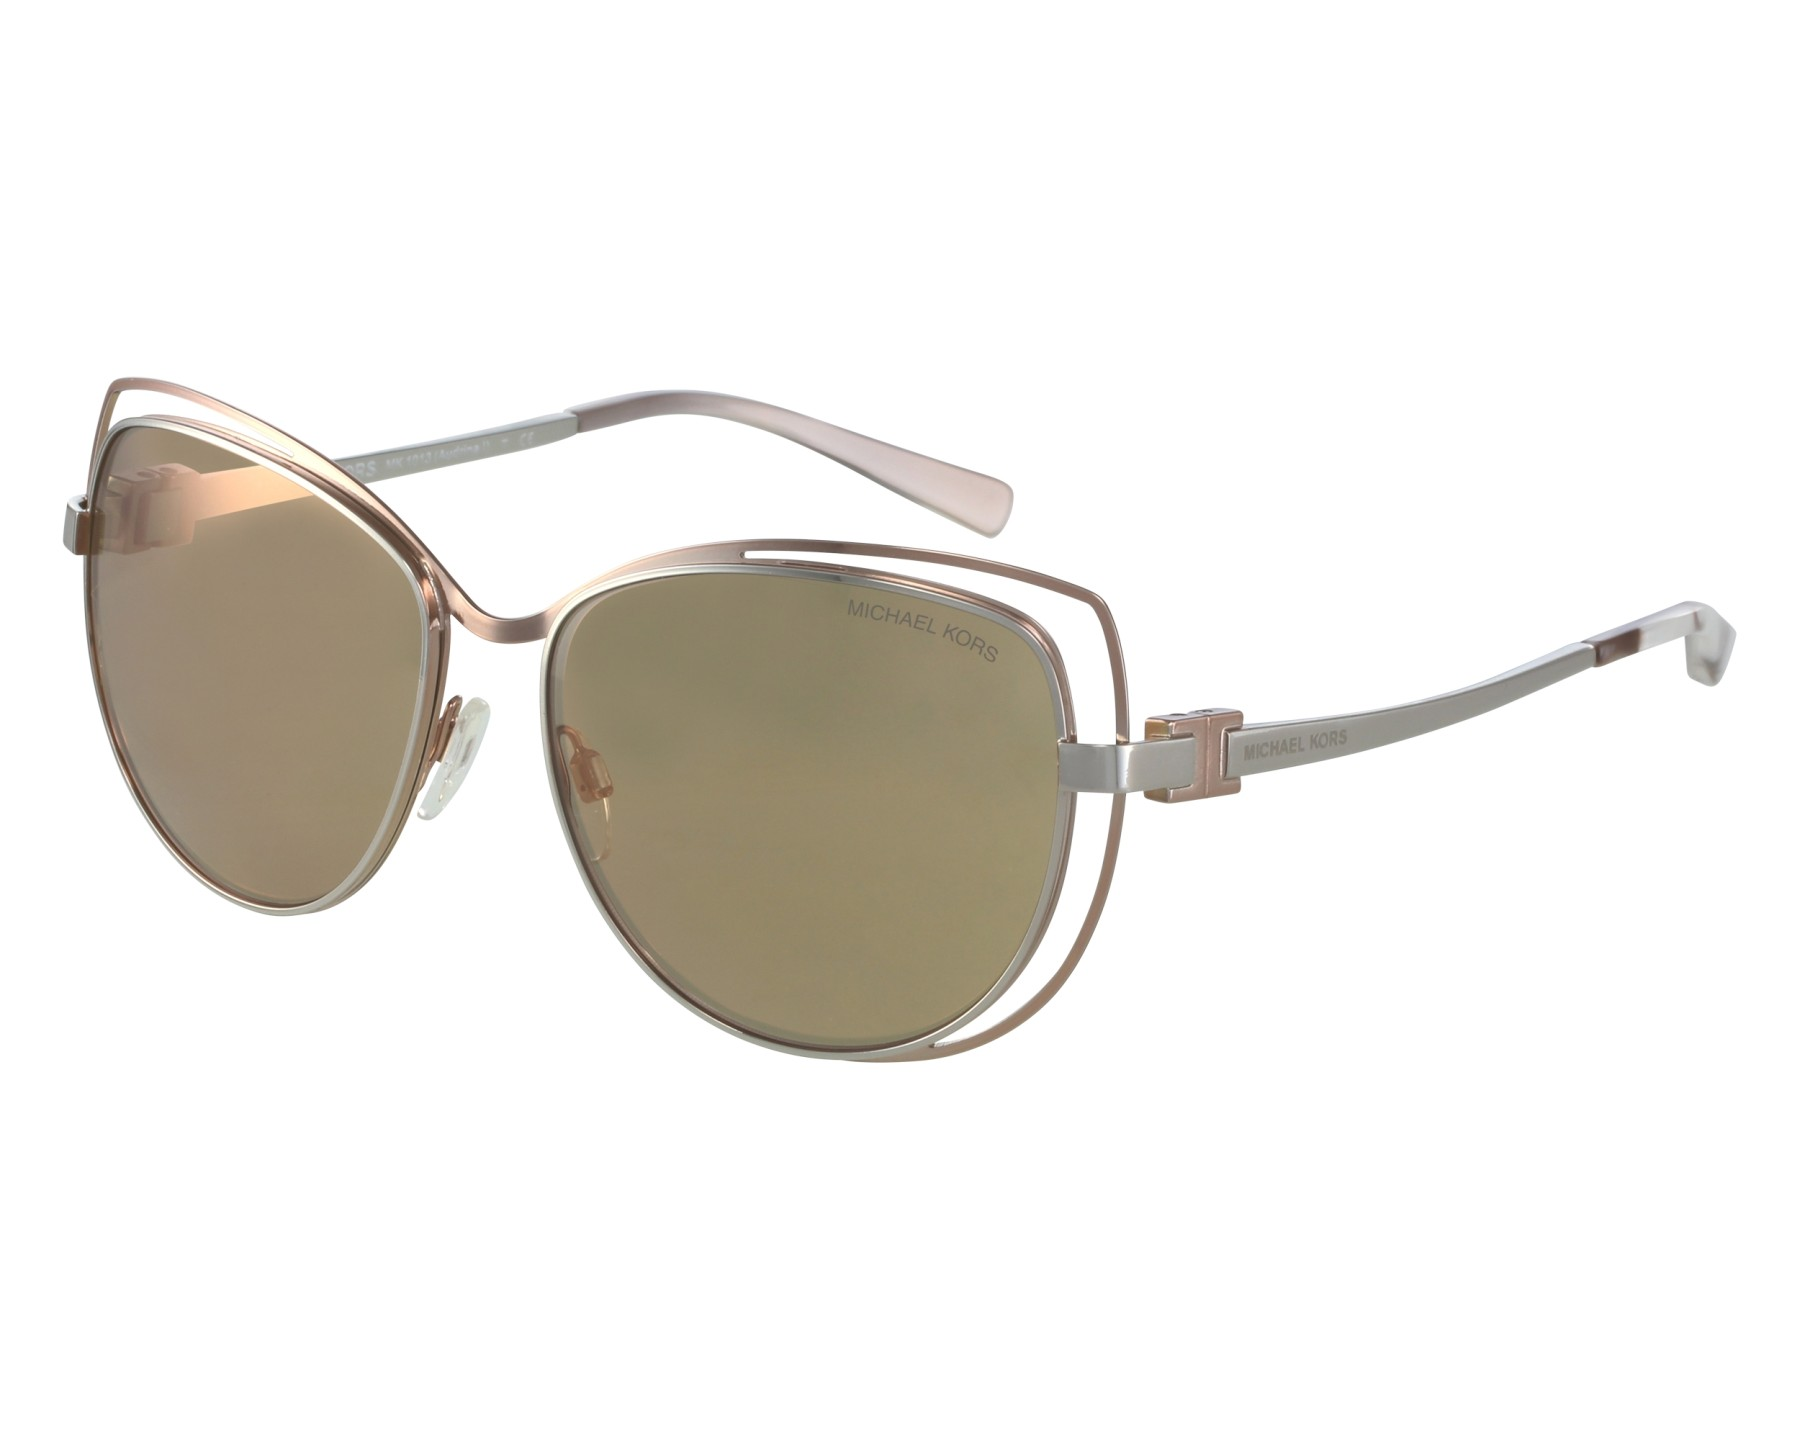 2a4832263ef Sunglasses Michael Kors MK-1013 1121 R1 58-15 Silver Pink front view